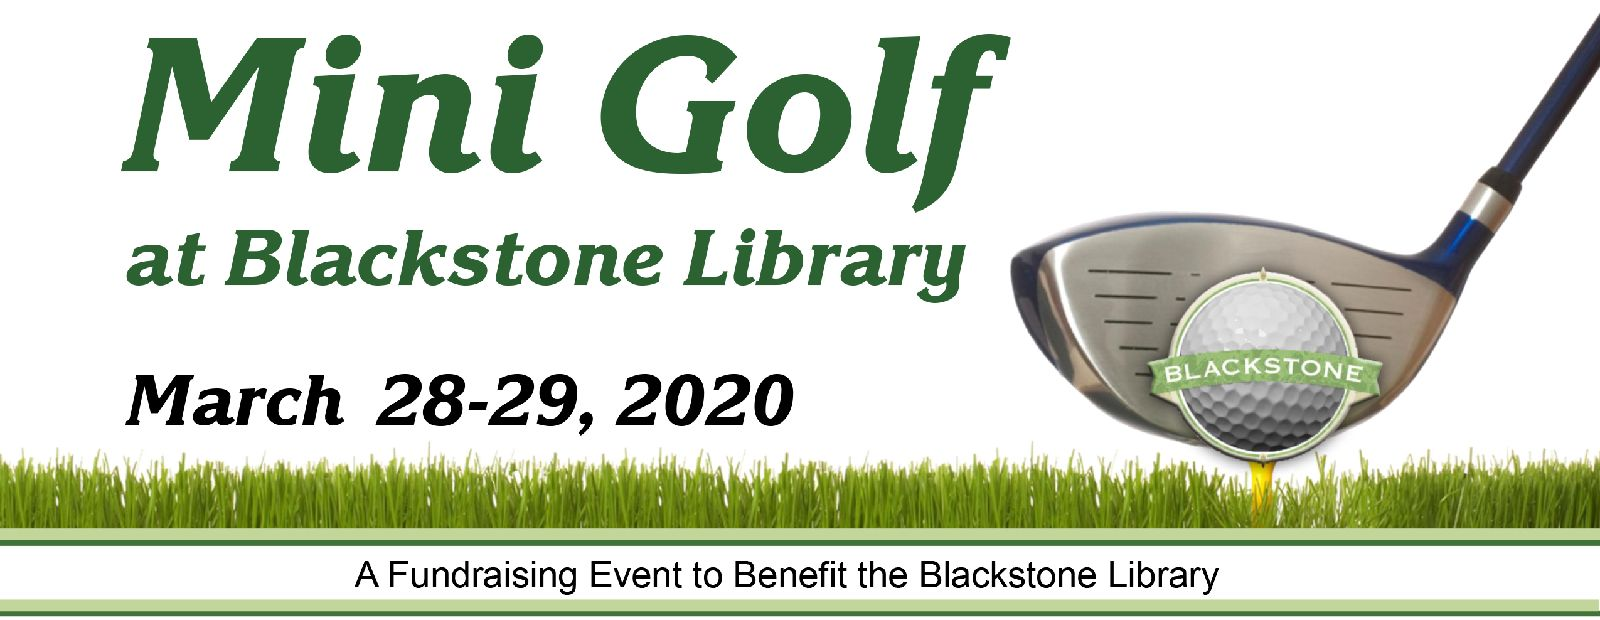 Mini Golf at Blackstone Library